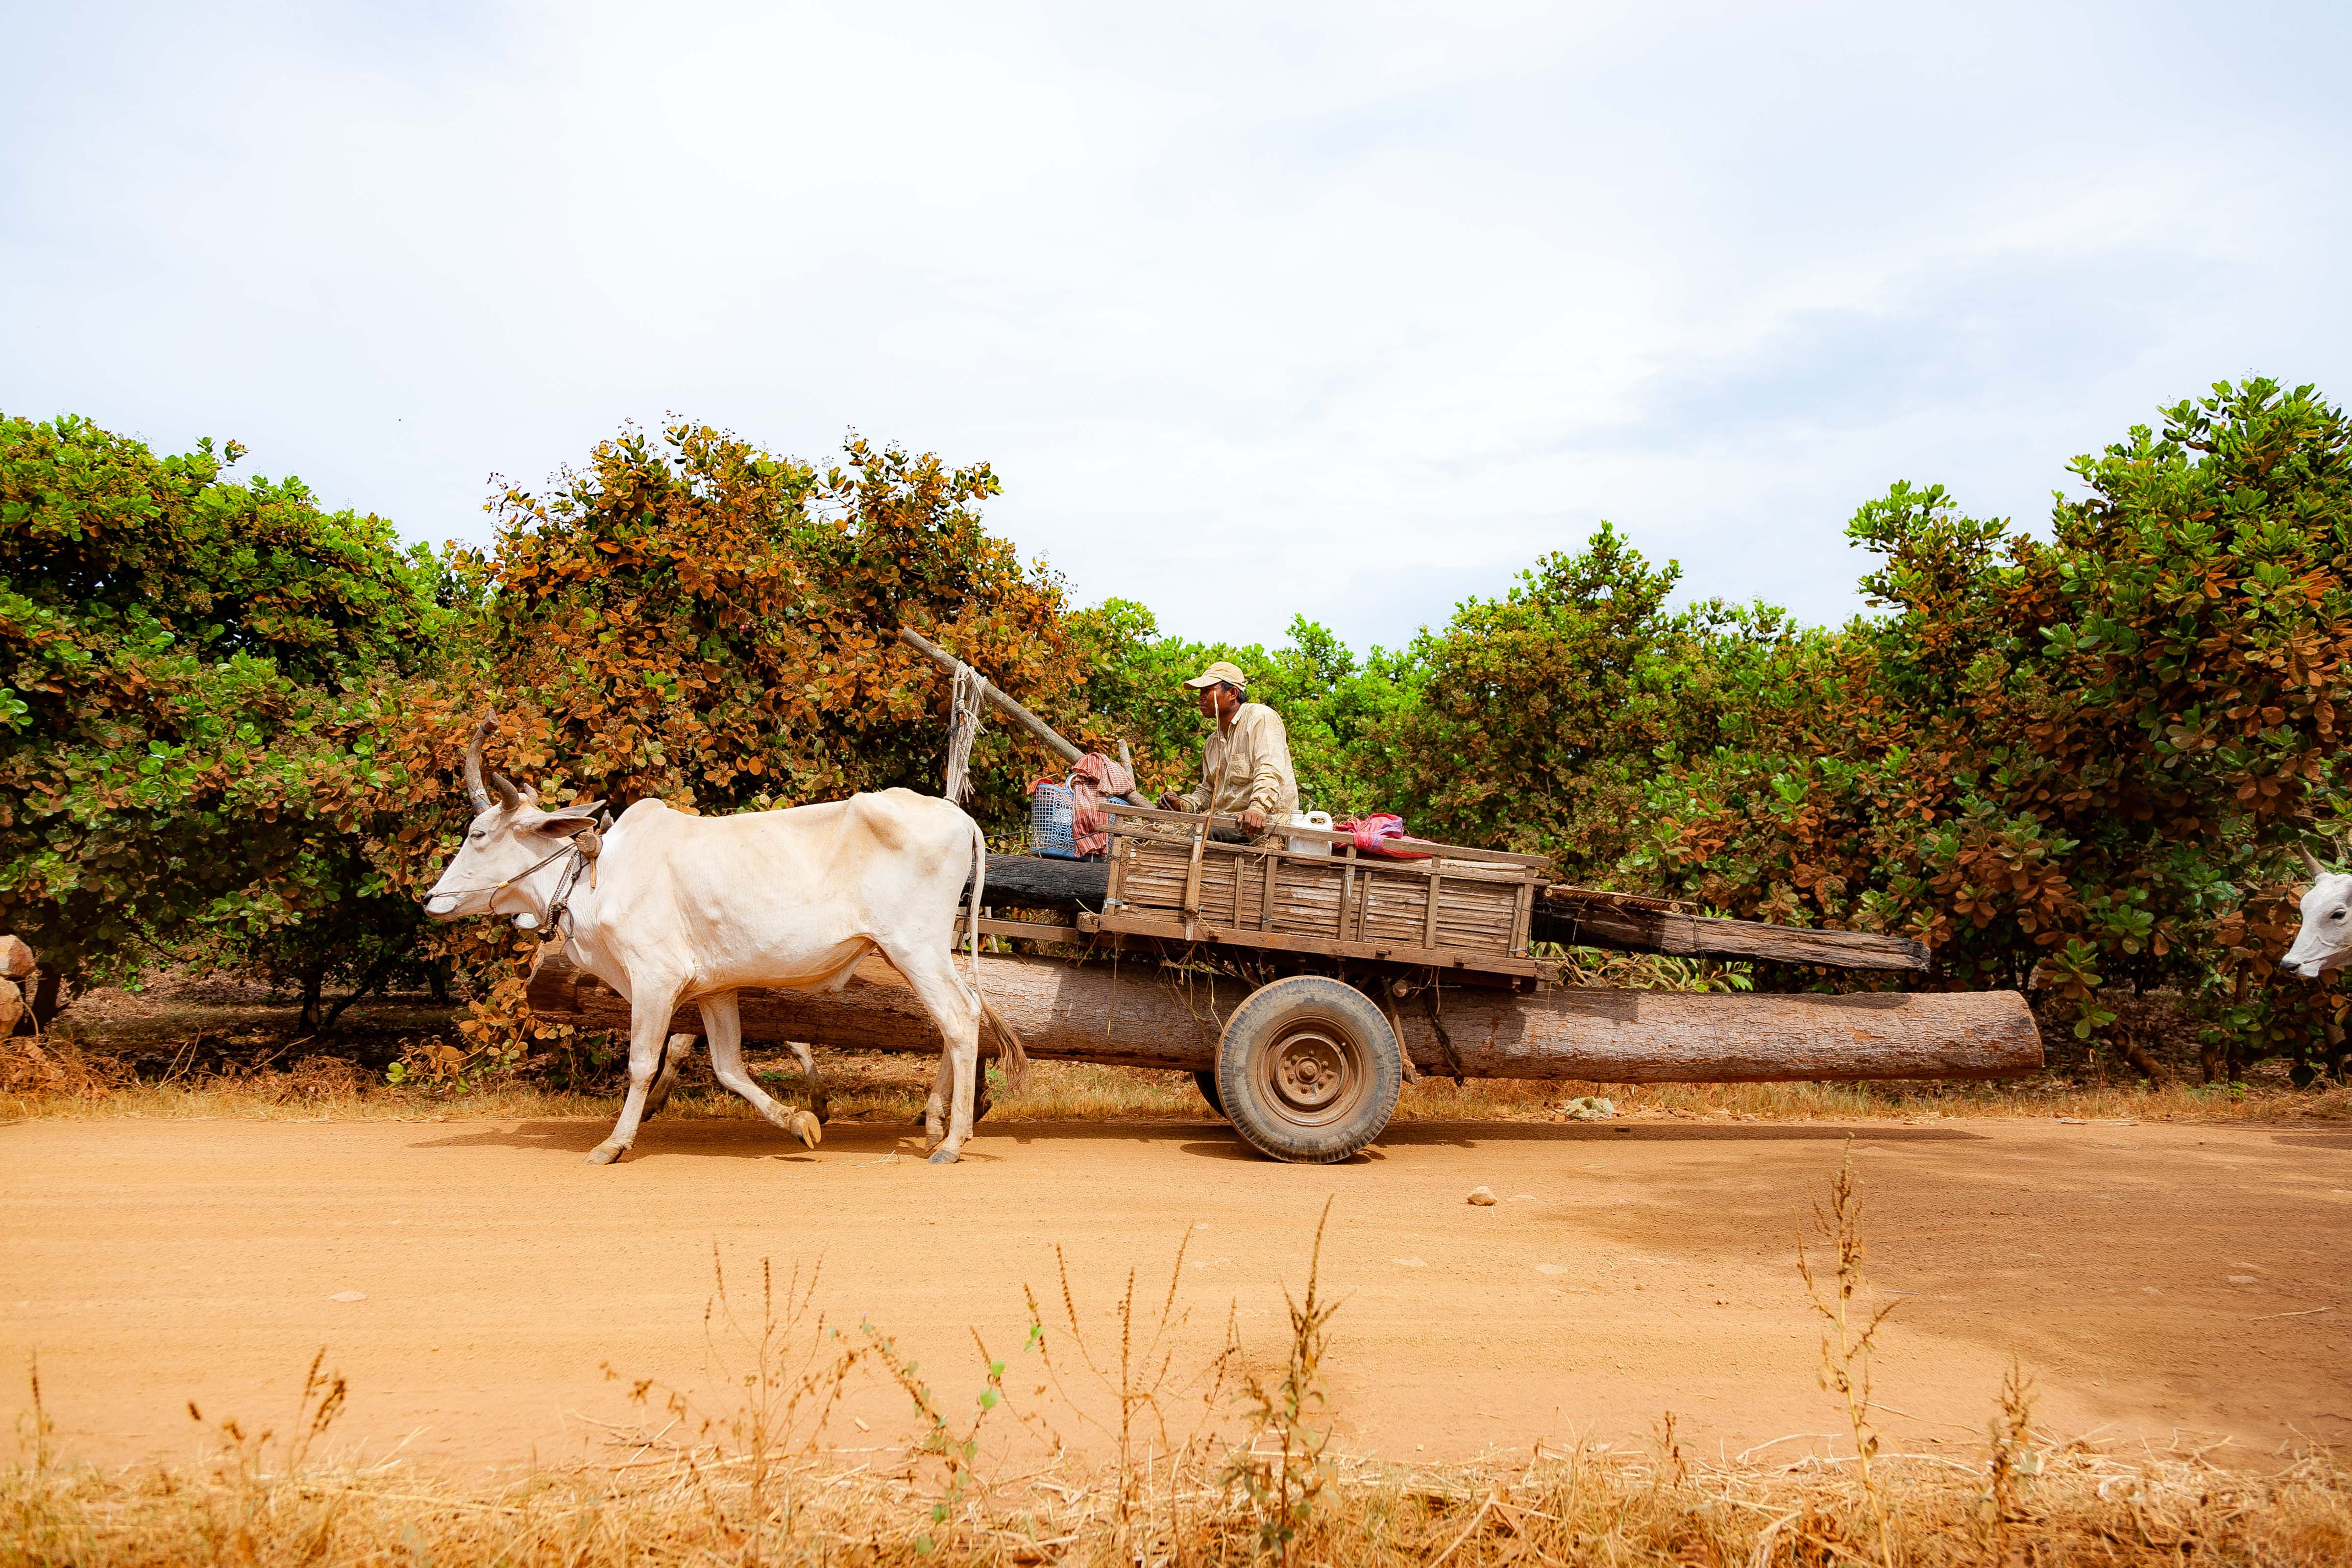 Cambodia, Kampong Chaam Prov, Cow Drawn Logging Cart, 2010, IMG 5431